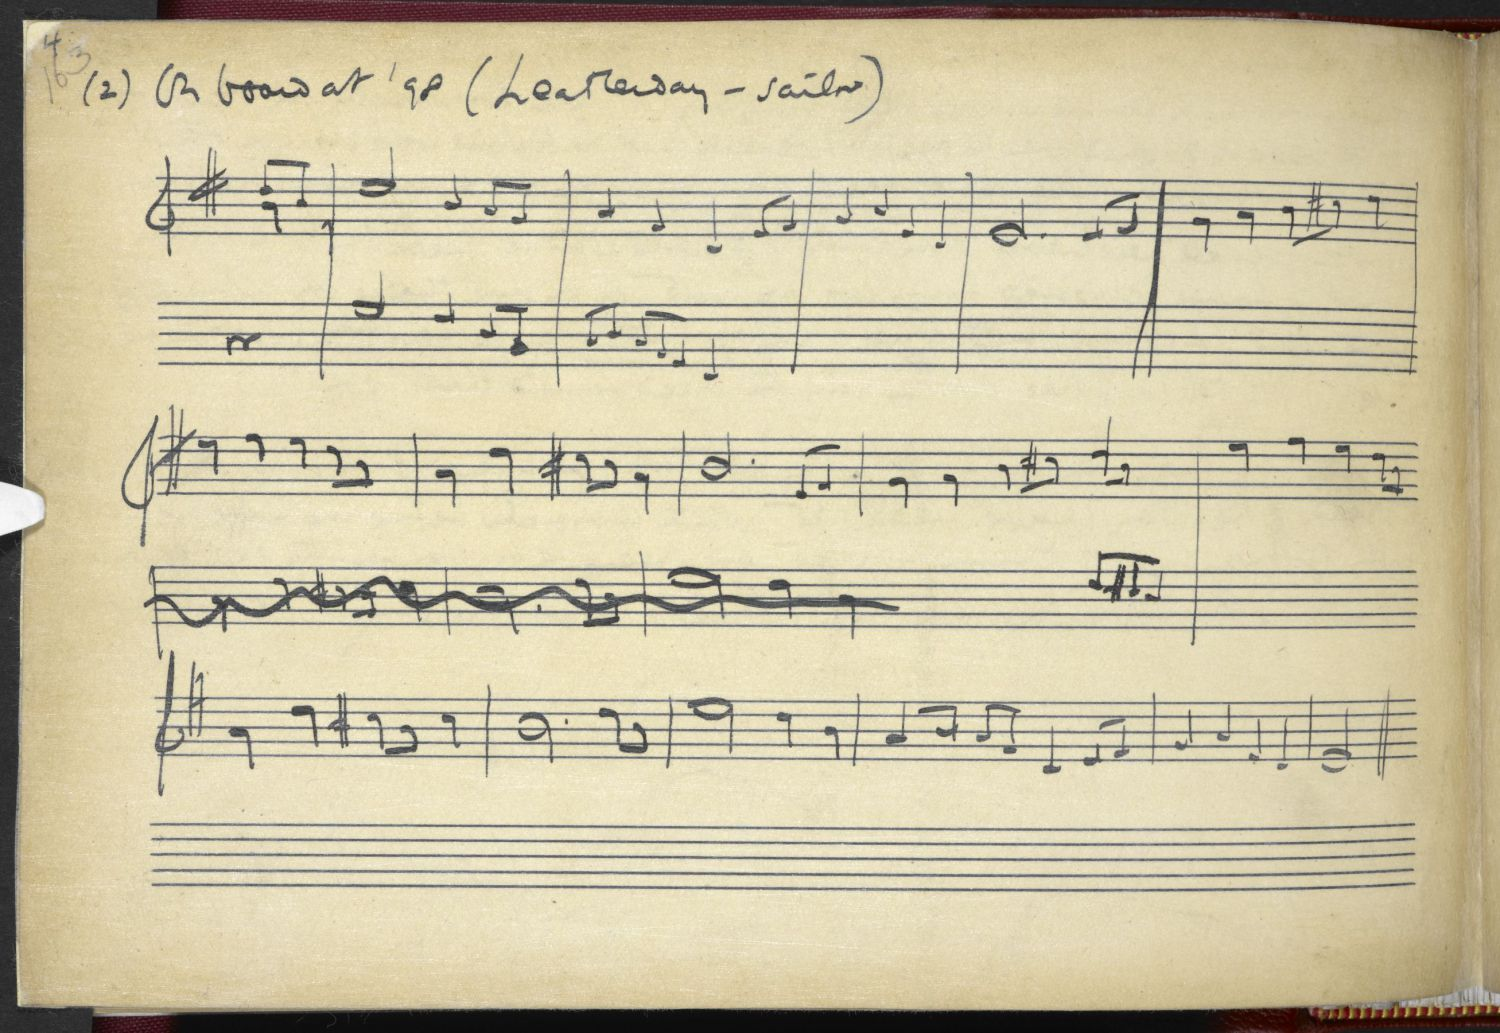 On Board A '98, collected by Vaughan Williams from Mr Leatherday, 1905. From the Full English archive.